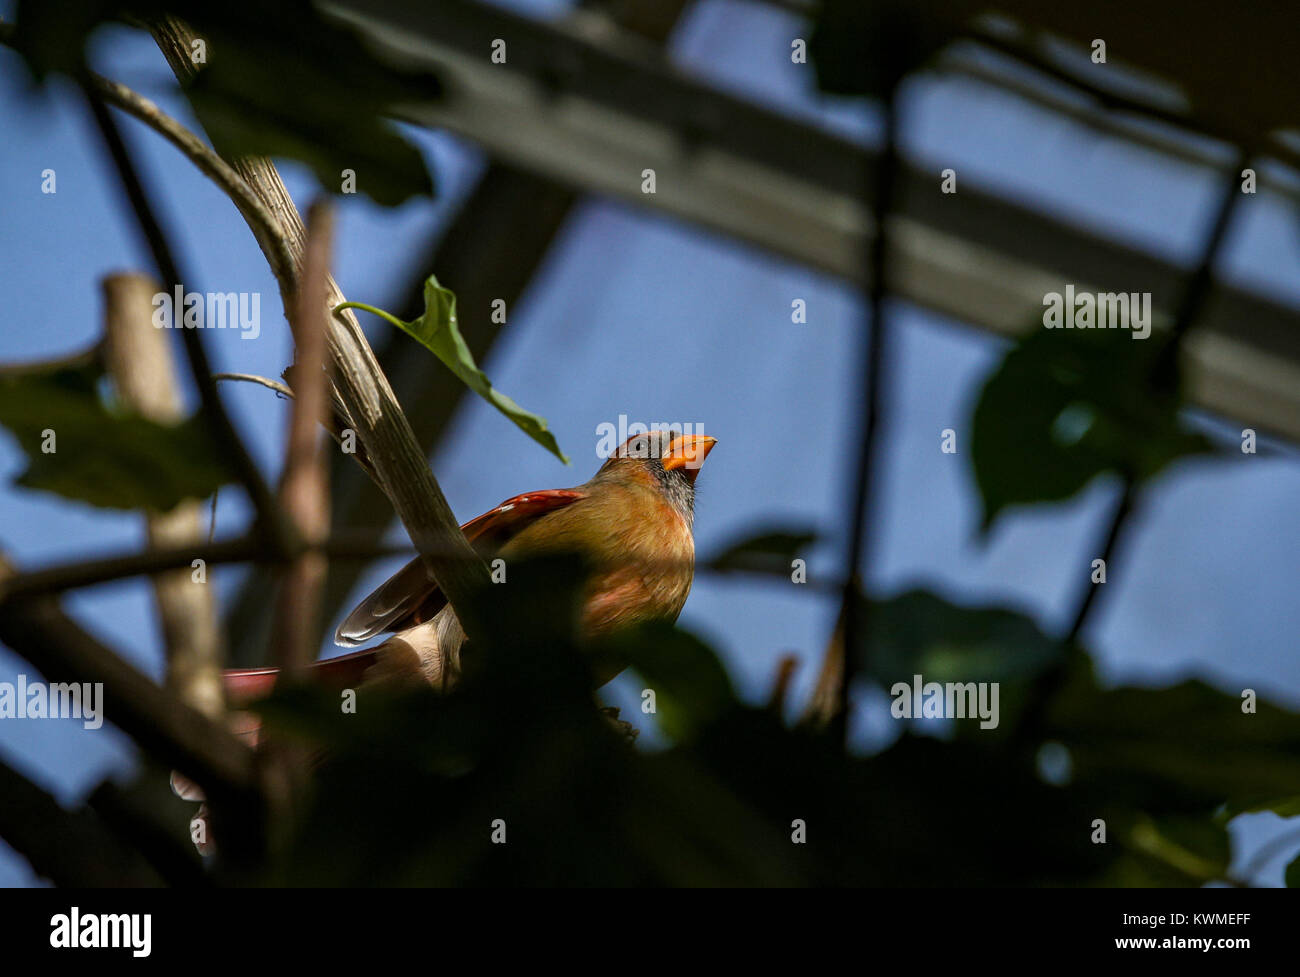 Davenport, Iowa, USA. 29th Nov, 2016. A bird perches itself amongst branches at Vander Veer Park in Davenport on - Stock Image